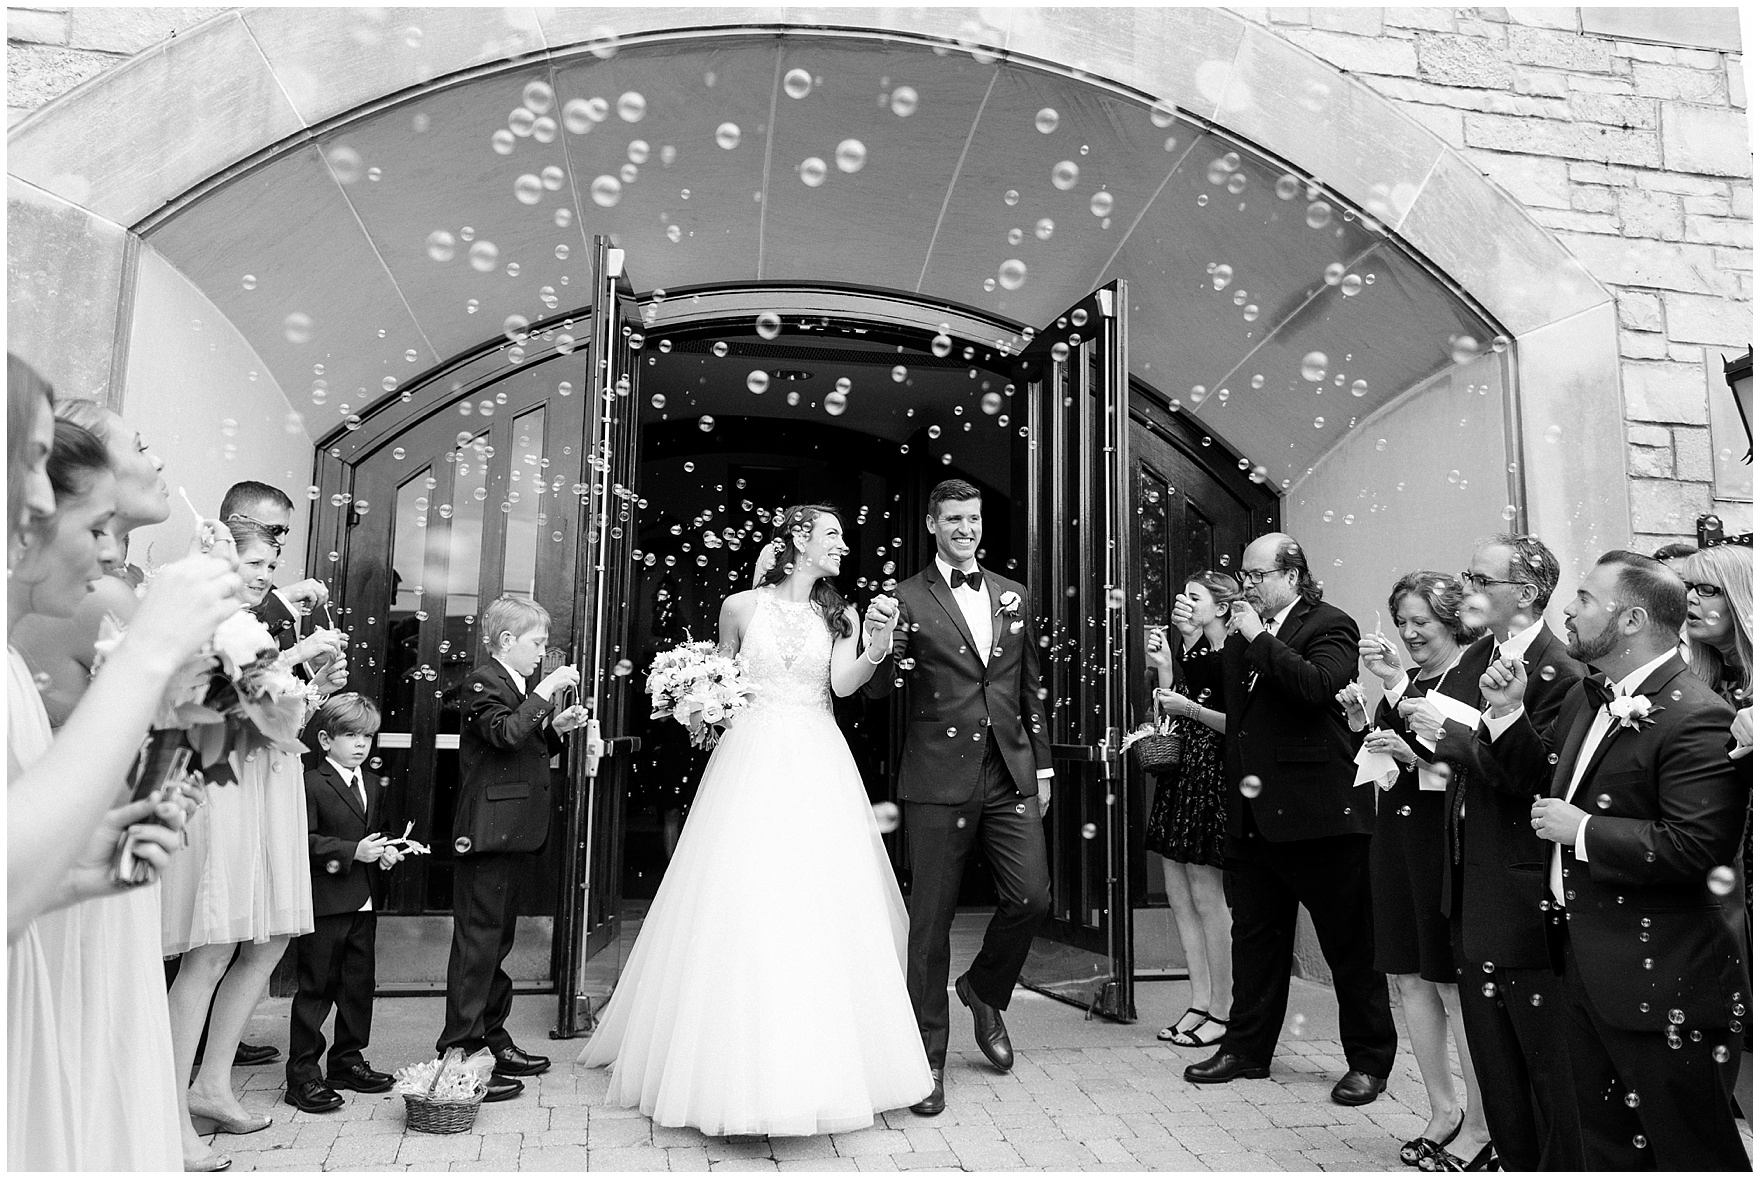 The bride and groom exit under a flurry of bubbles after their ceremony at St. Anne's Catholic Community, for a Biltmore Country Club Barrington wedding.